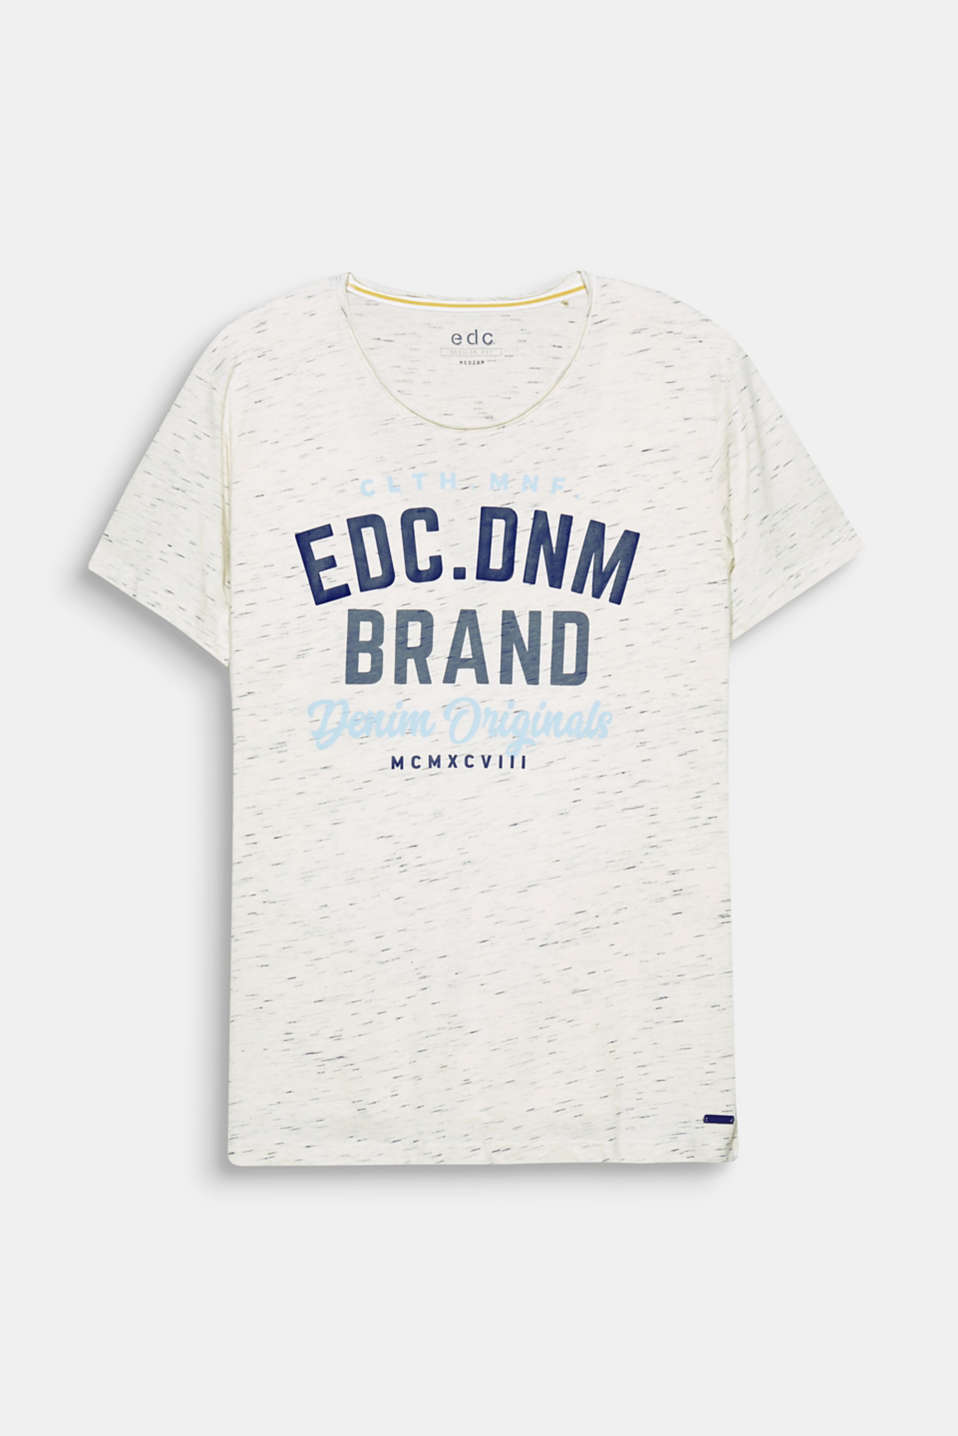 edc, your denim brand! A distinctive print gives this blended cotton t-shirt its statement flair.